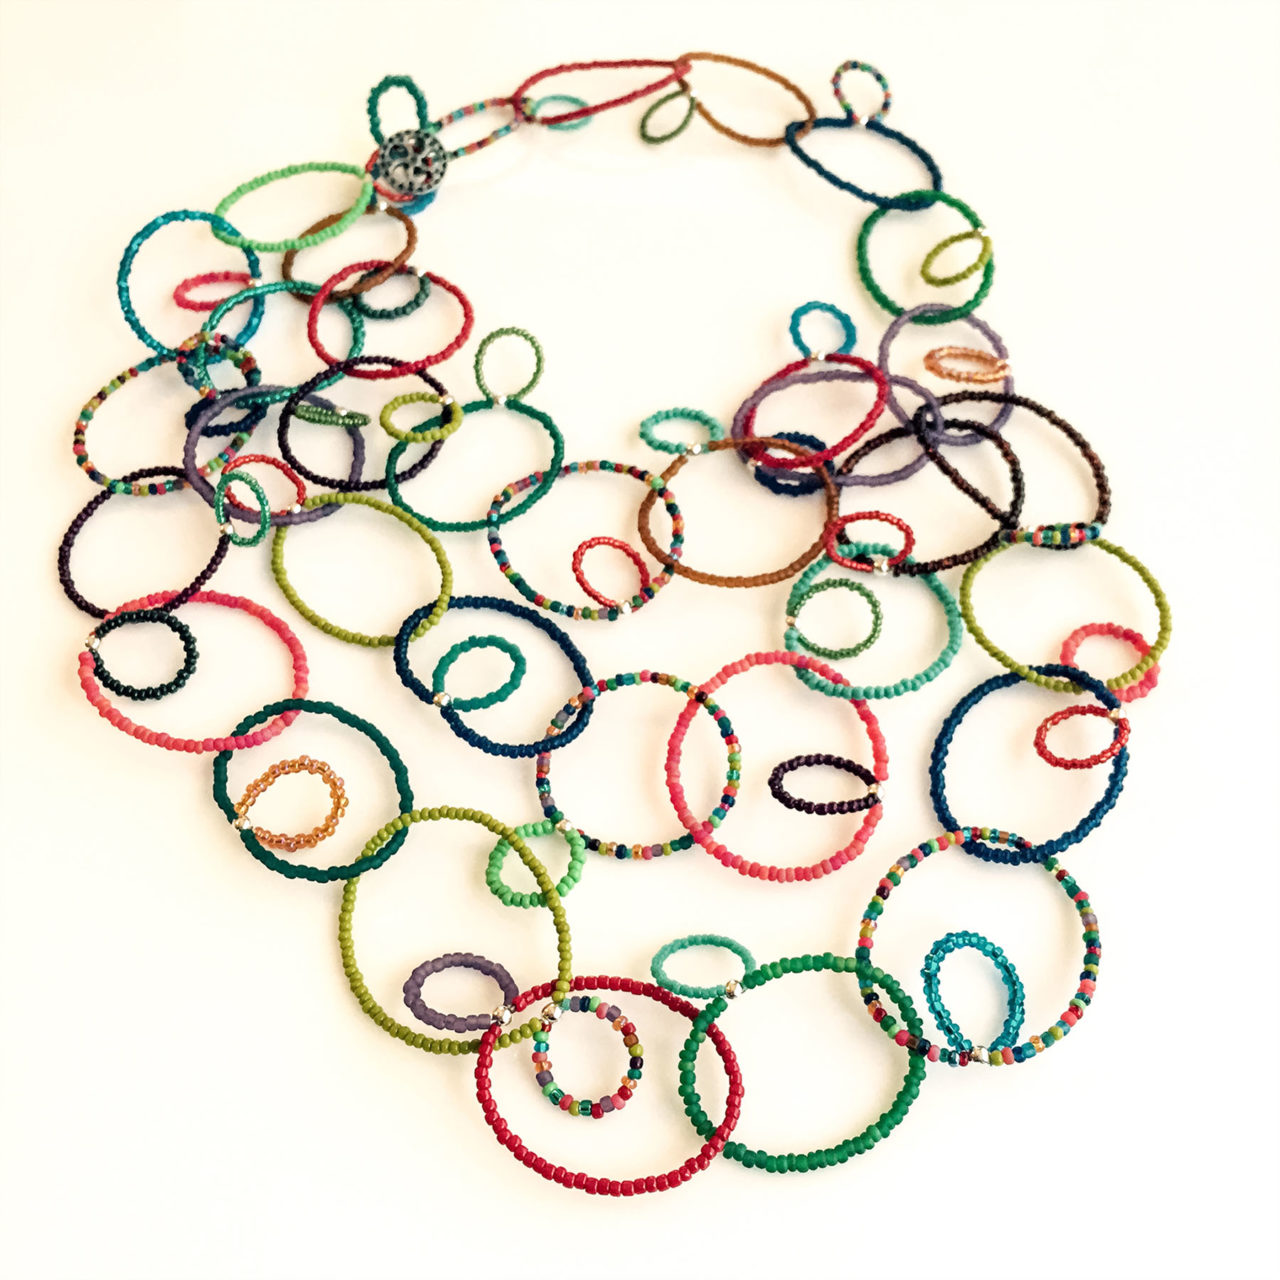 Two-Son-Jewelry-Loops-Necklace